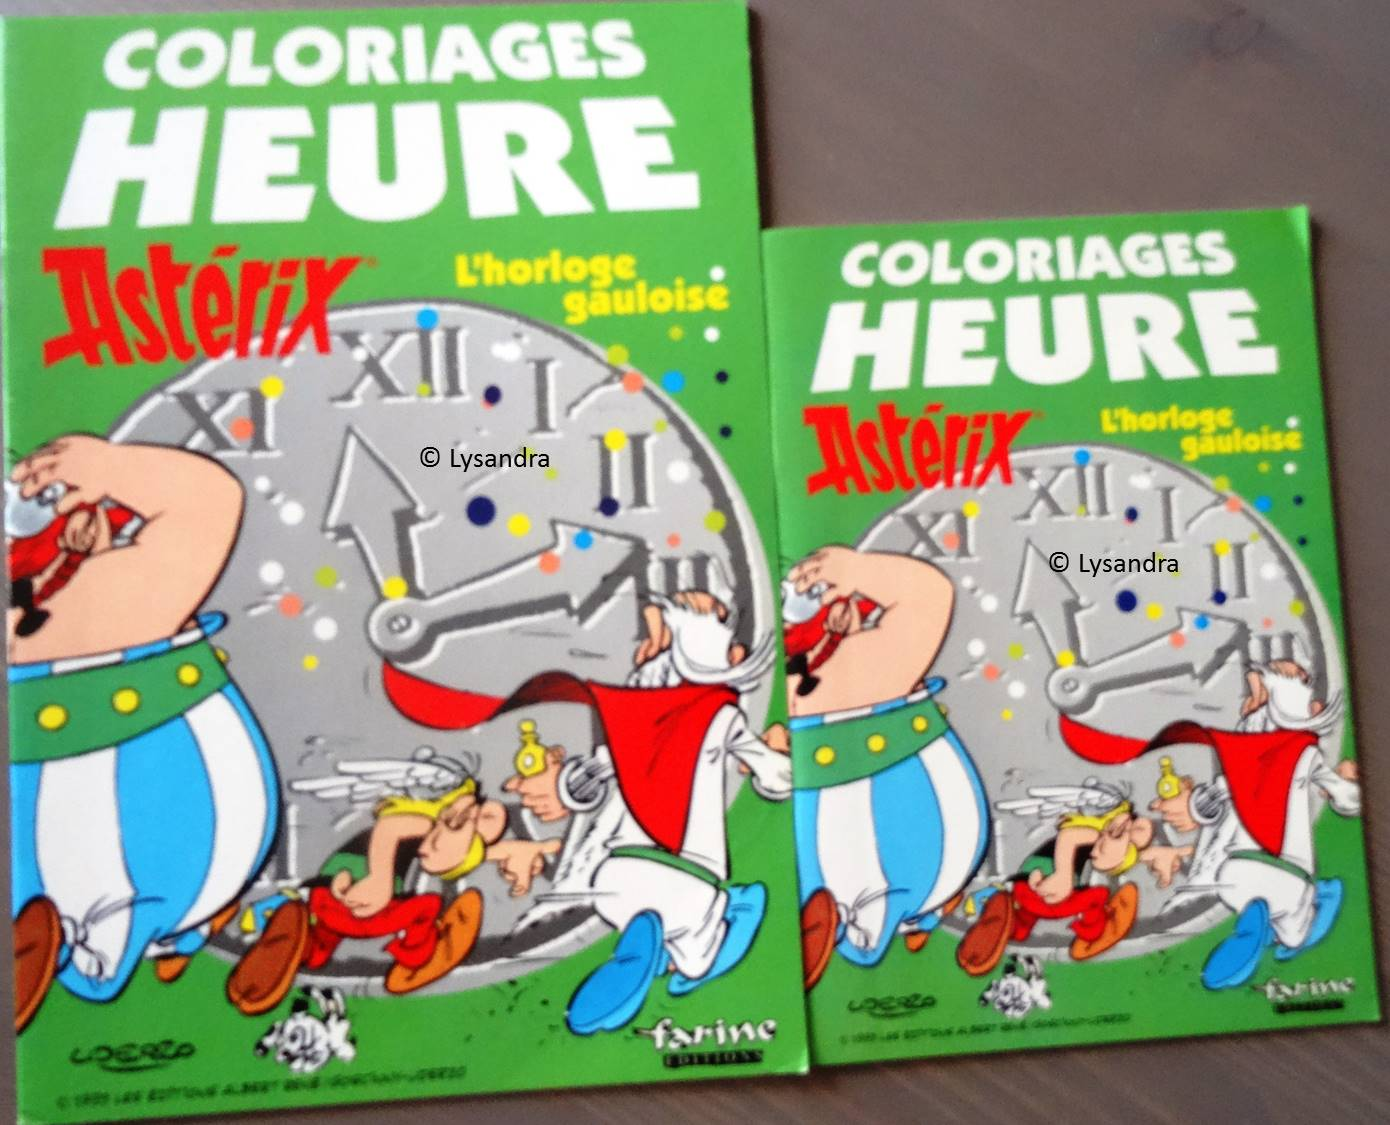 Coloriages Editions Farine